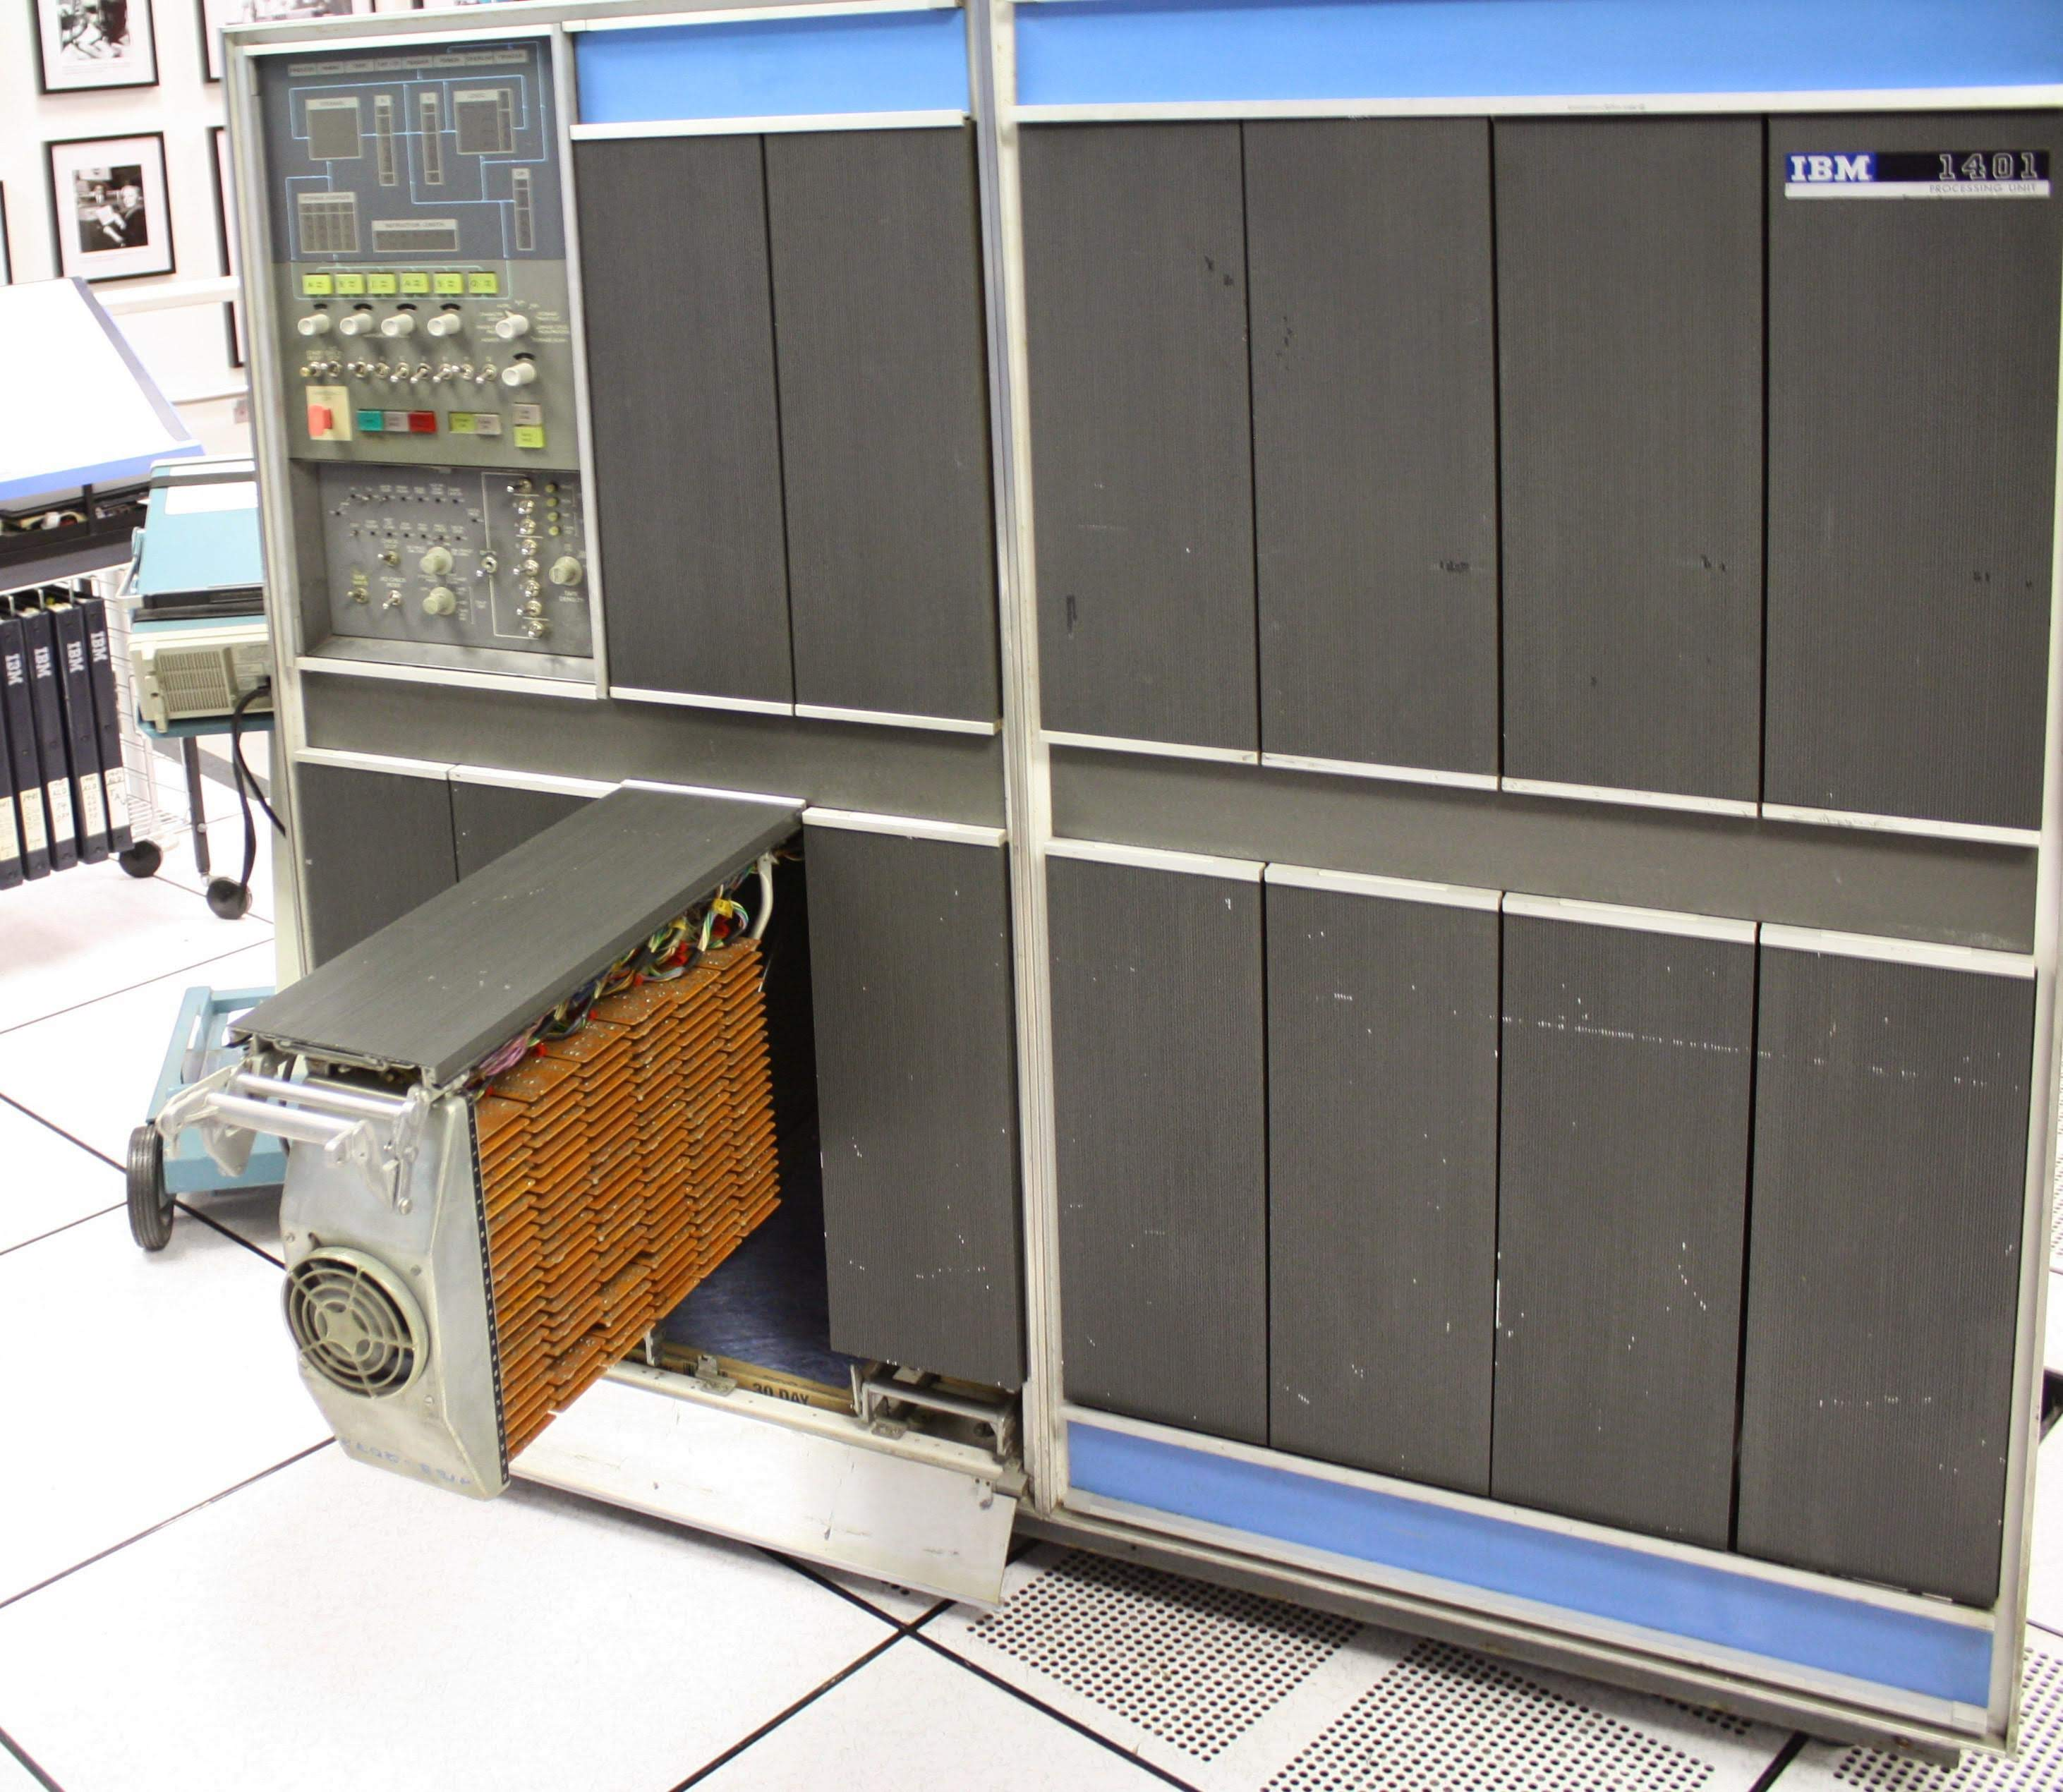 Ken Shirriffs Blog September 2018 Circuits 8085 Projects Archive Pull Transistor Circuit Relay The Ibm 1401 Computer With One Of Gates Opened Showing Dozens